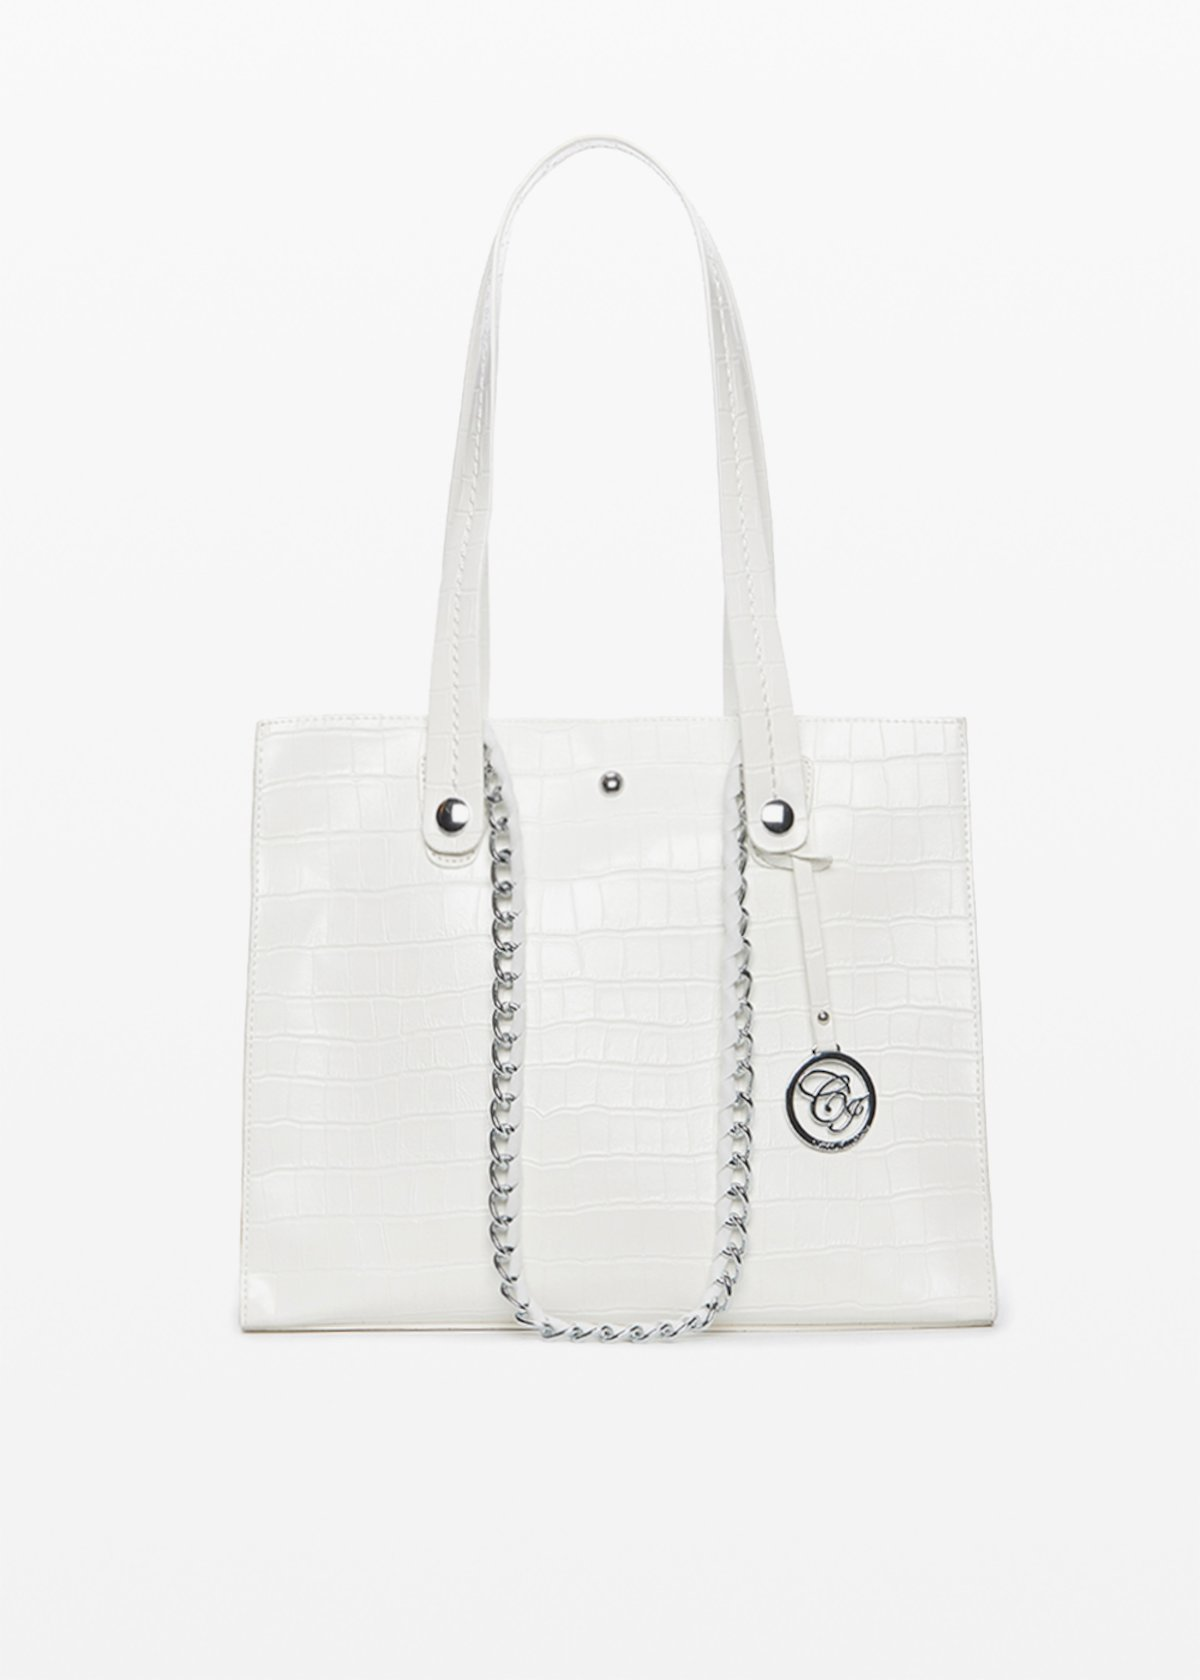 Shopping bag Briant in ecopelle stampa cocco